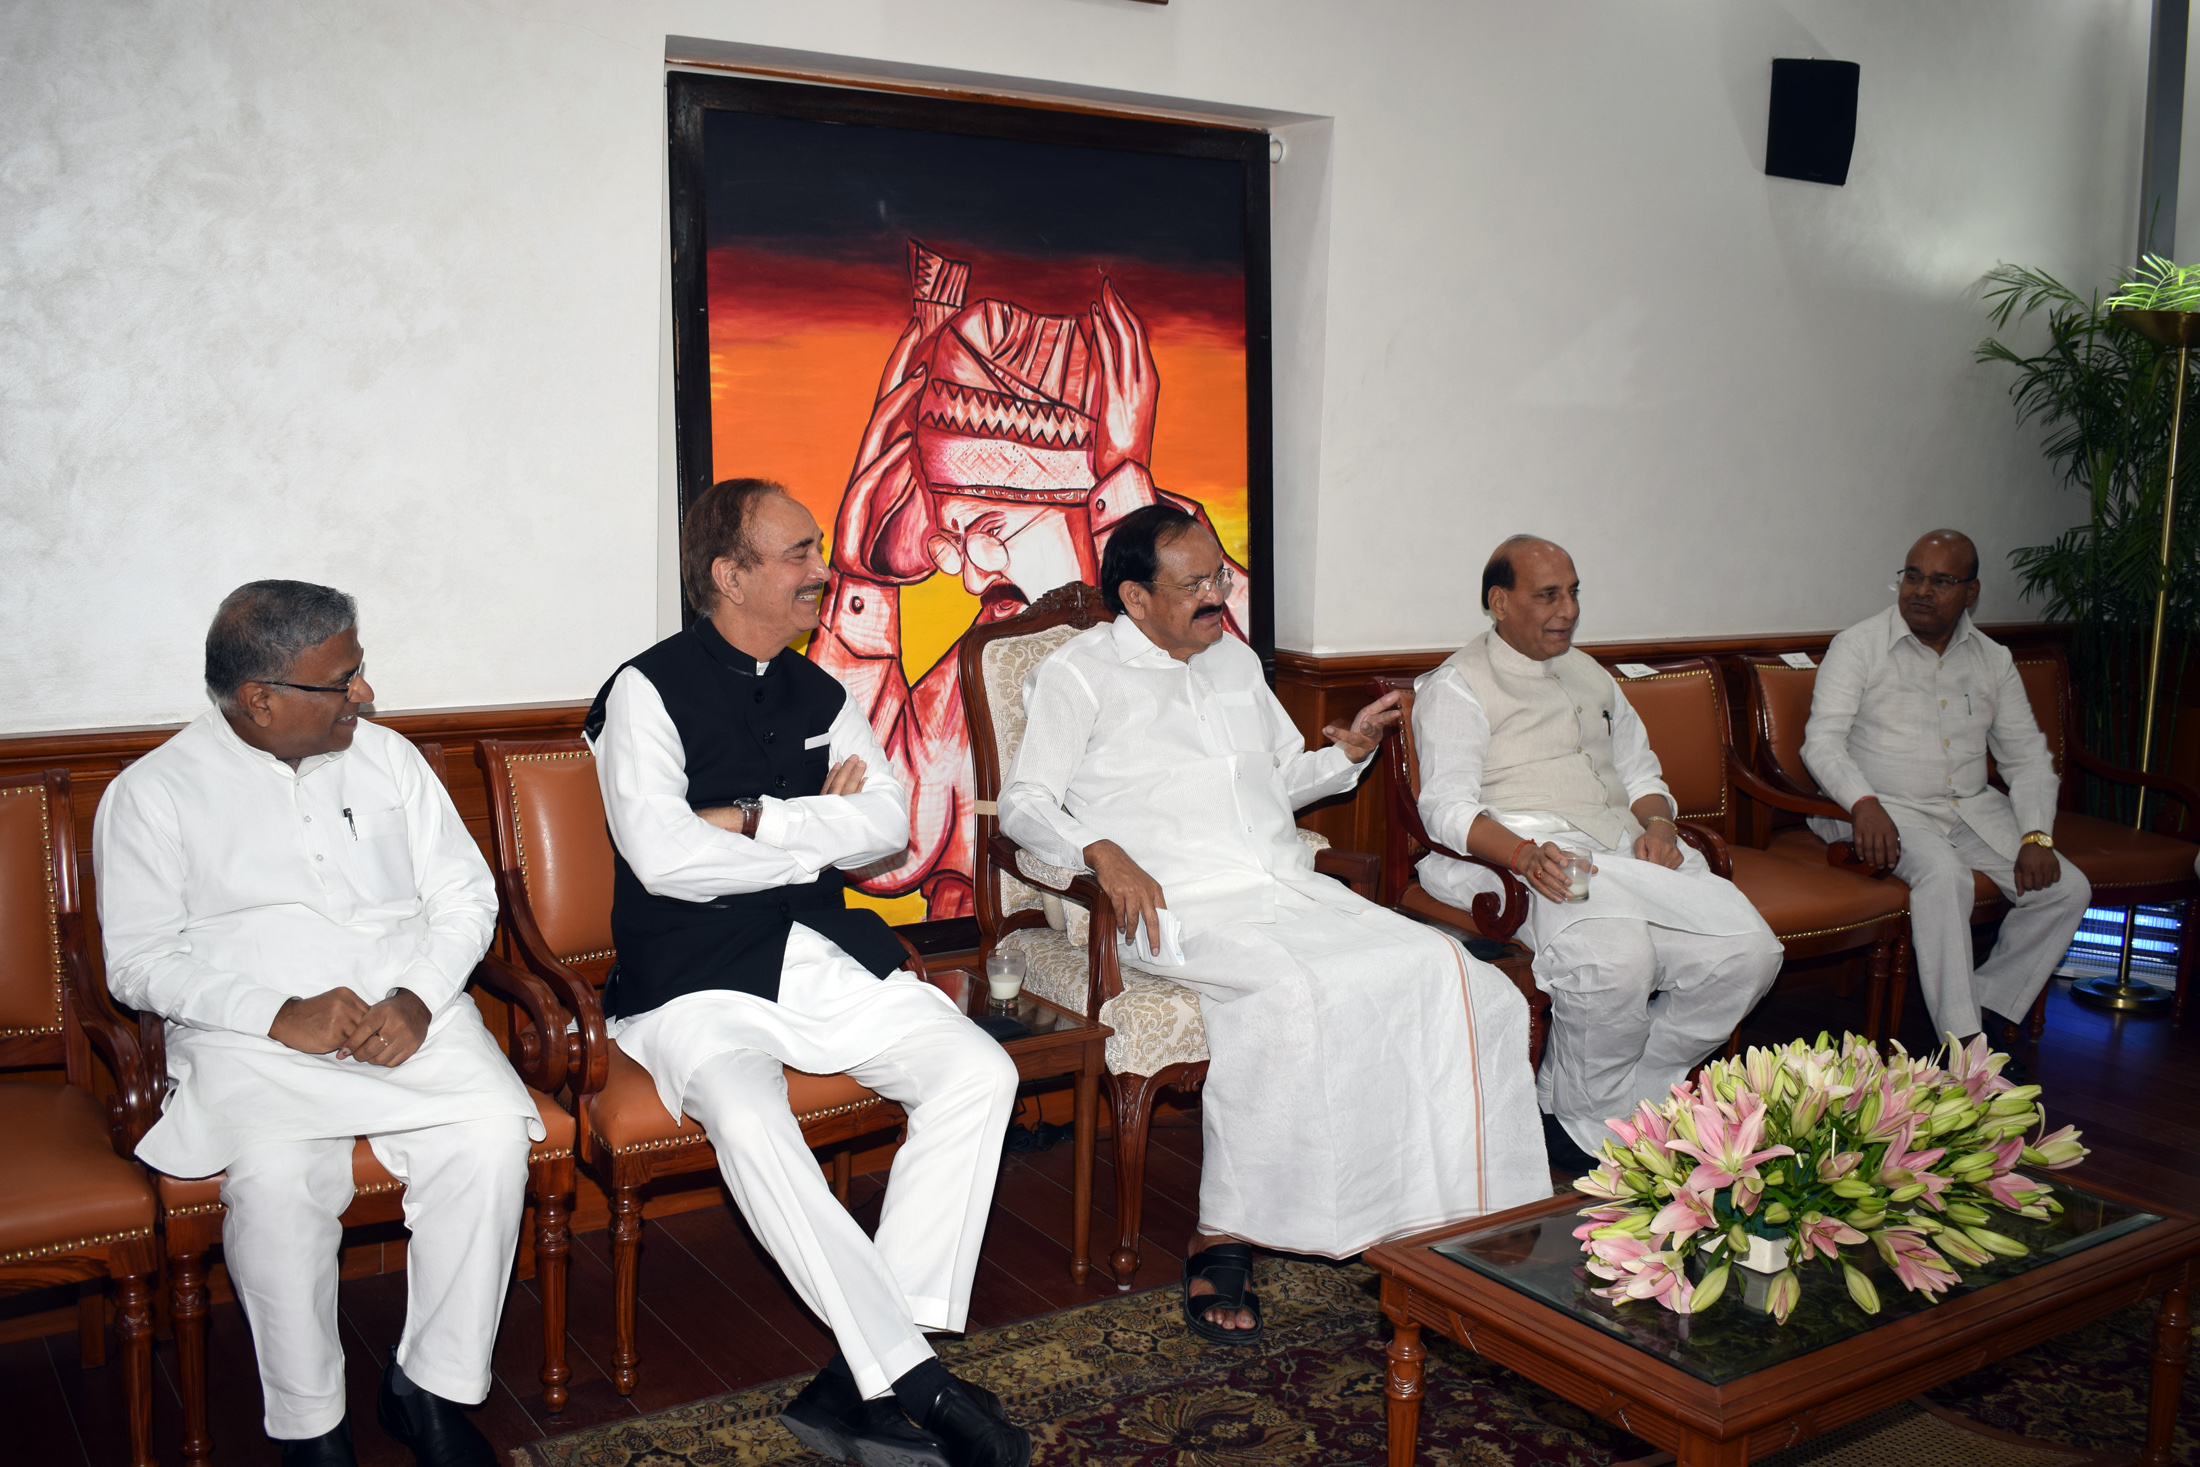 The Vice President, Shri M. Venkaiah Naidu at a Luncheon Meeting hosted by him to the Floor Leaders of Rajya Sabha, in New Delhi on June 20, 2019. The Deputy Chairman of Rajya Sabha, Shri Harivansh, the Leader of the House, Shri Thaawar Chand Gehlot, the Leader of the Opposition, Shri Gulam Nabi Azad, the Union Minister for Defence, Shri Rajnath Singh are also seen.